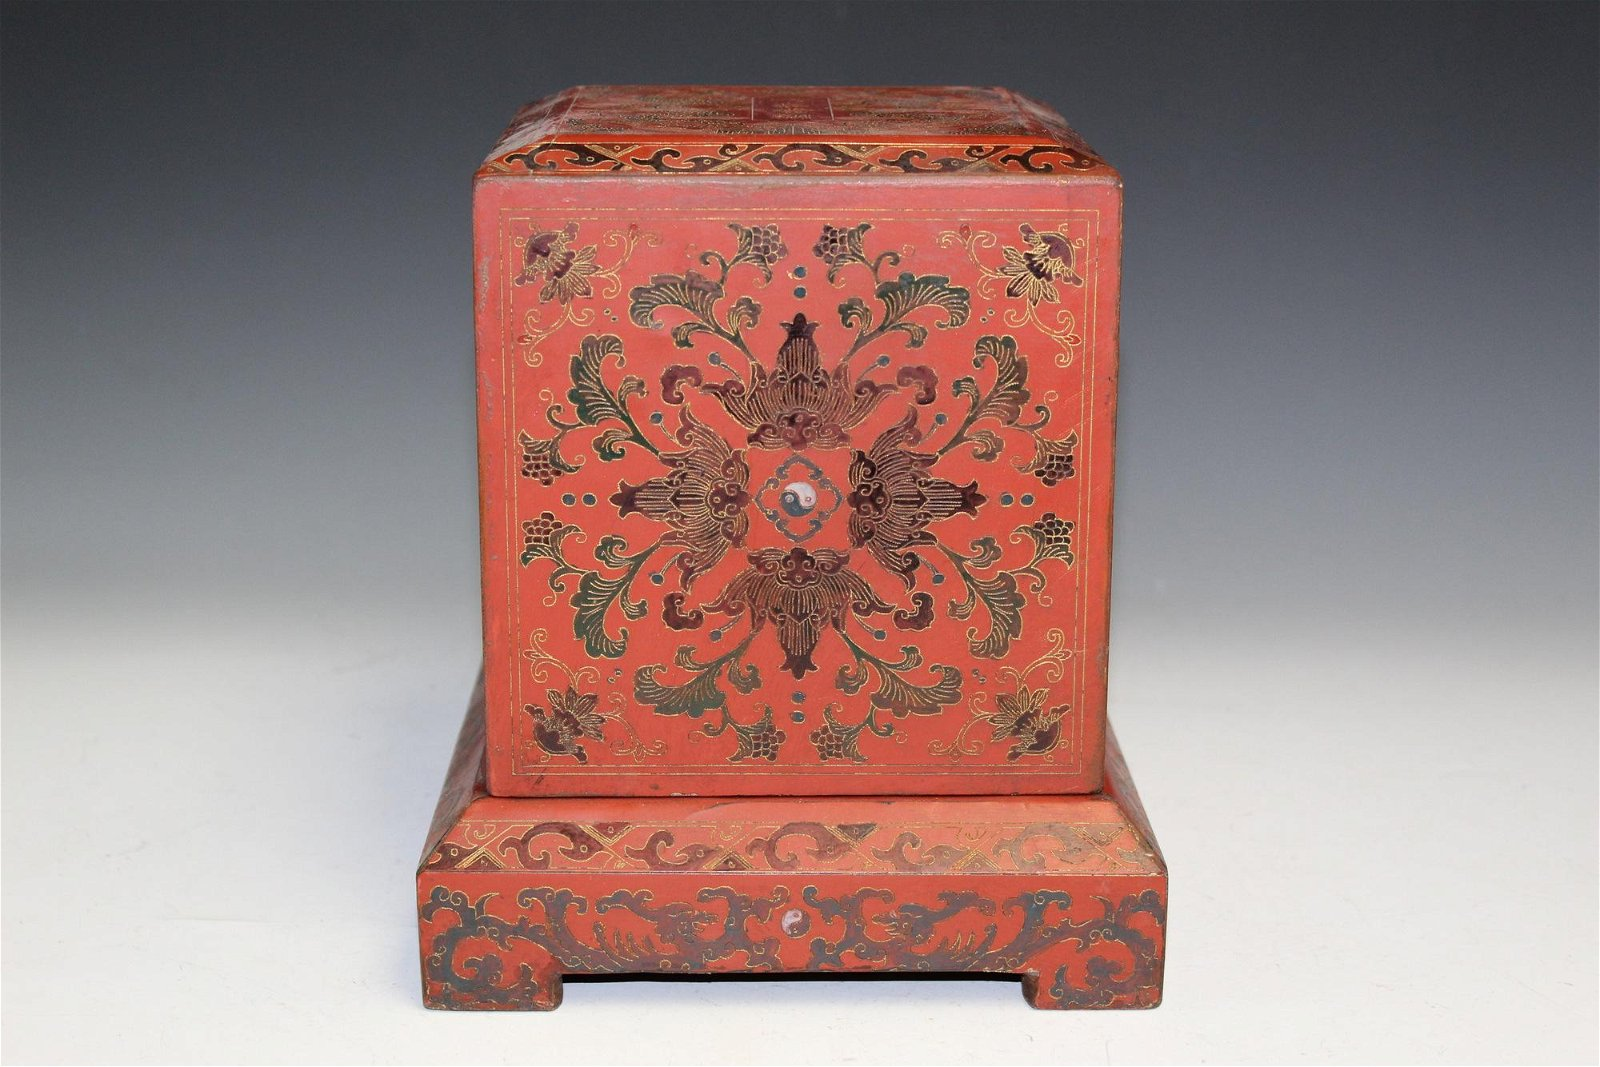 Chinese red lacquer box.